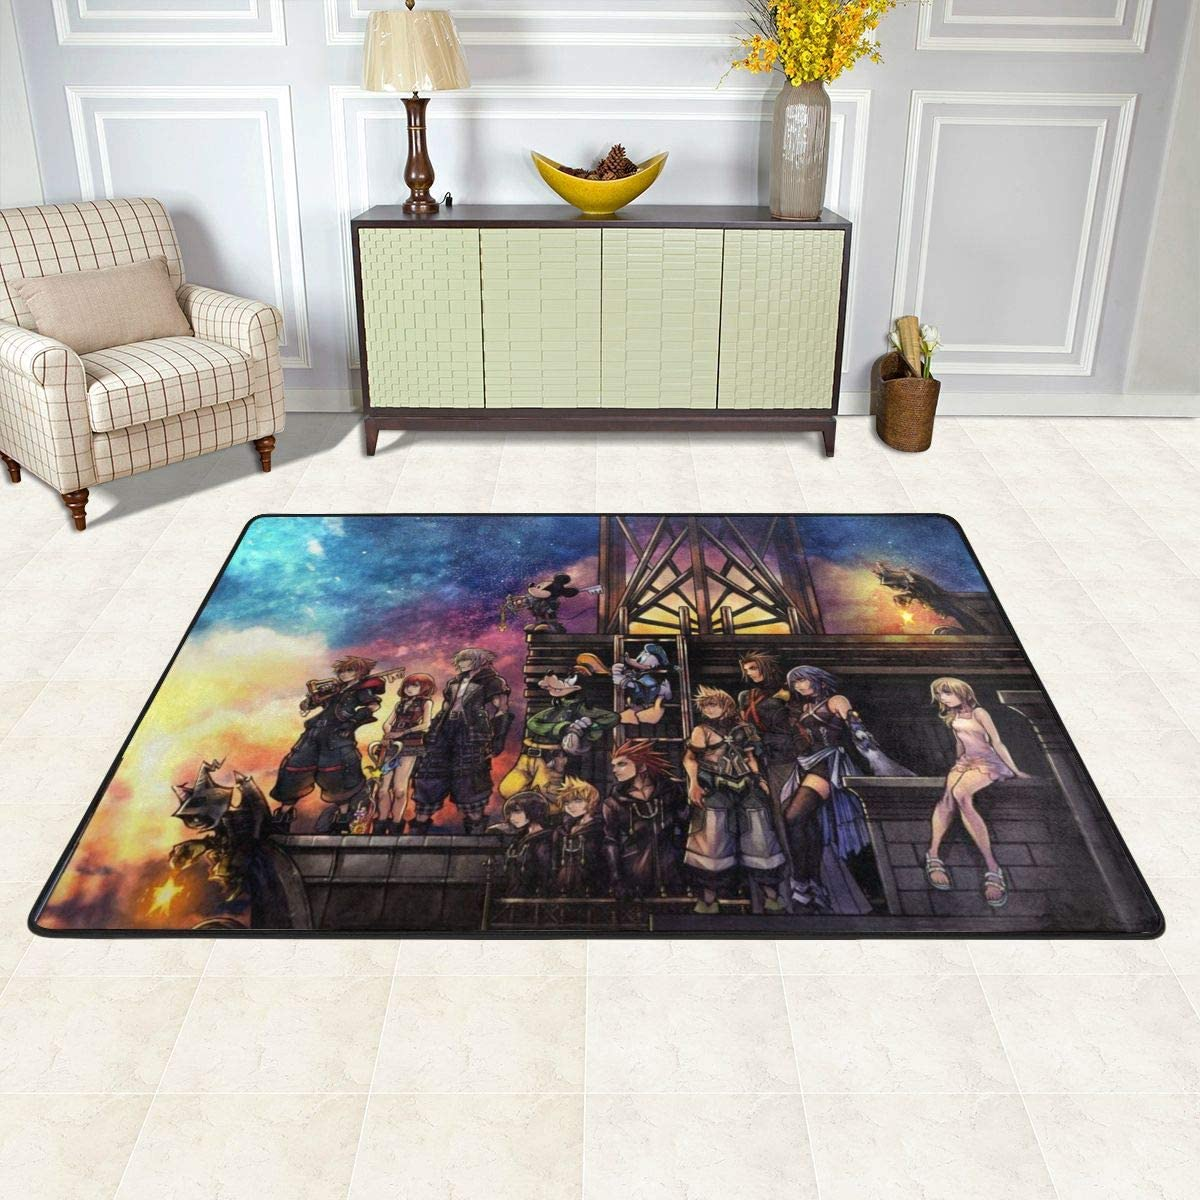 Kingdom Hearts Non-Slip Carpet Area Rug Modern Flannel Microfiber Anime Cartoon Rectangle Carpet Decor Floor Rug Living Room,Bedroom,Study Floor Mat 6 X 4